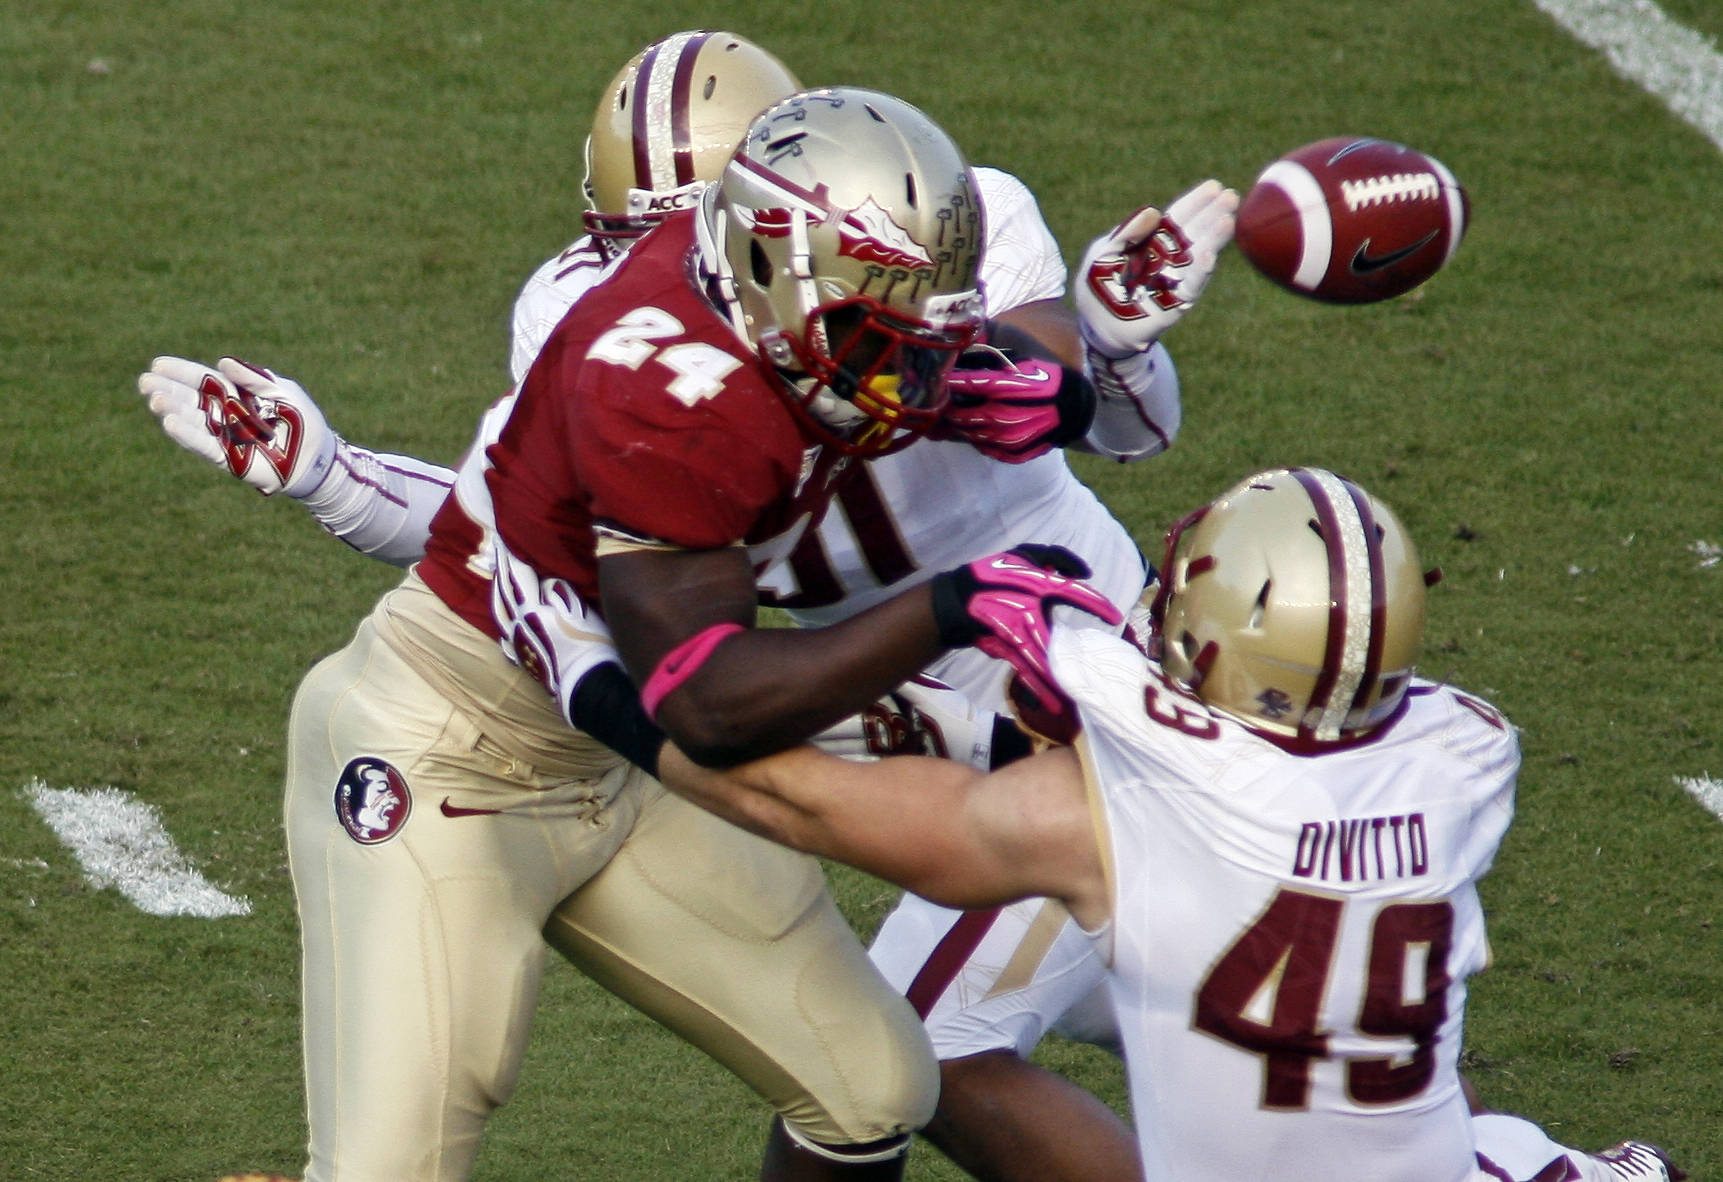 Florida State fullback Lonnie Pryor (24) is hammered by Boston College defensive end Kasim Edebali (91), causing him to fumble the ball in the first quarter. (AP Photo/Phil Sears)